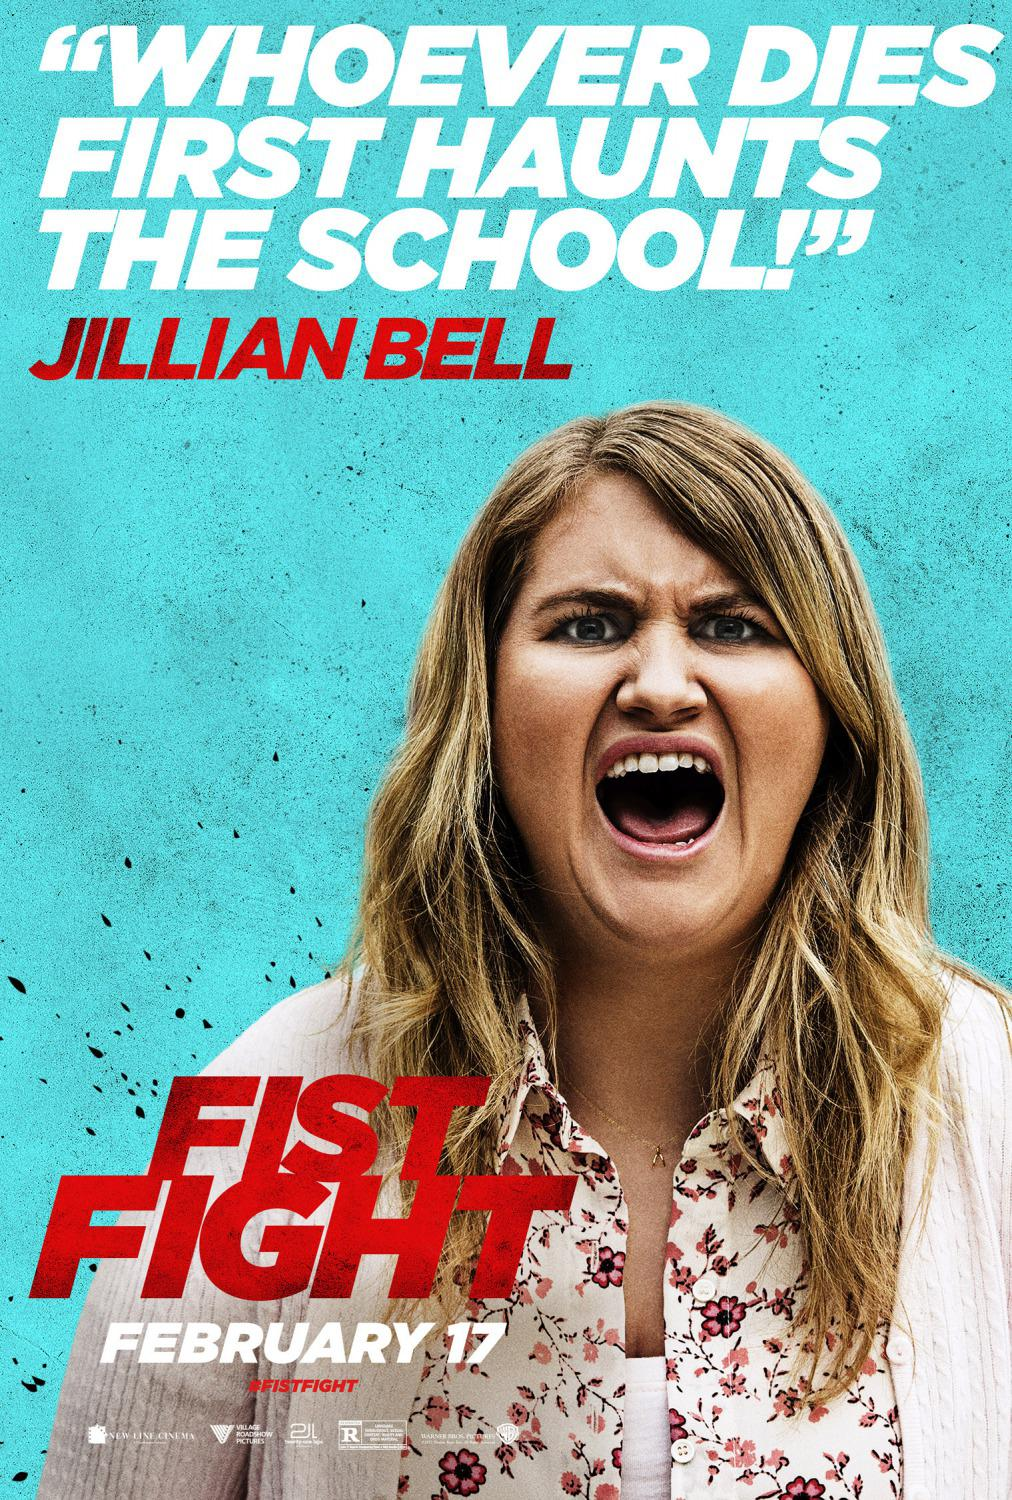 Fist Fight - Whoever dies first haunts the School - Jillian Bell